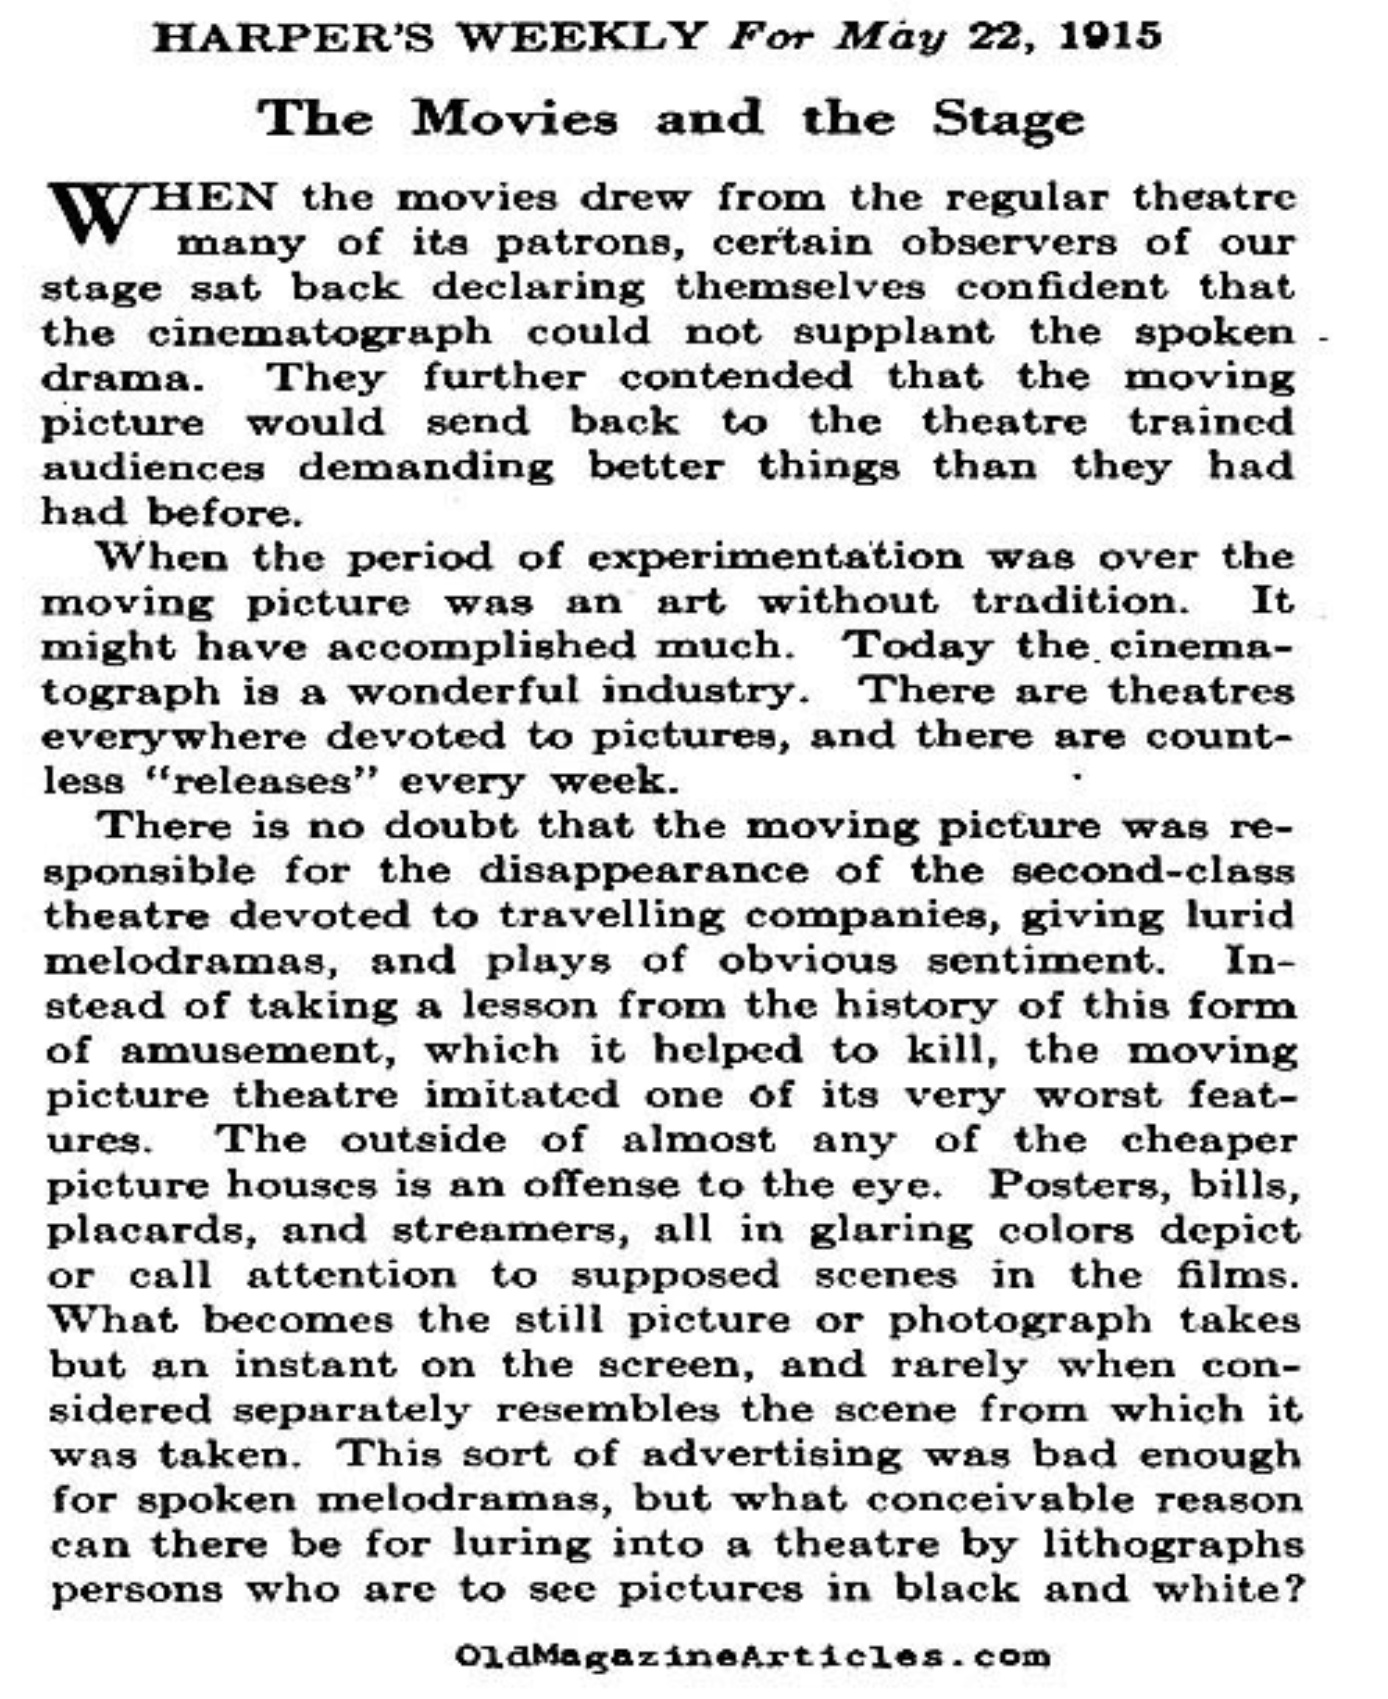 Stage Productions Must Compete With Movies   (Harper's Weekly, 1915)